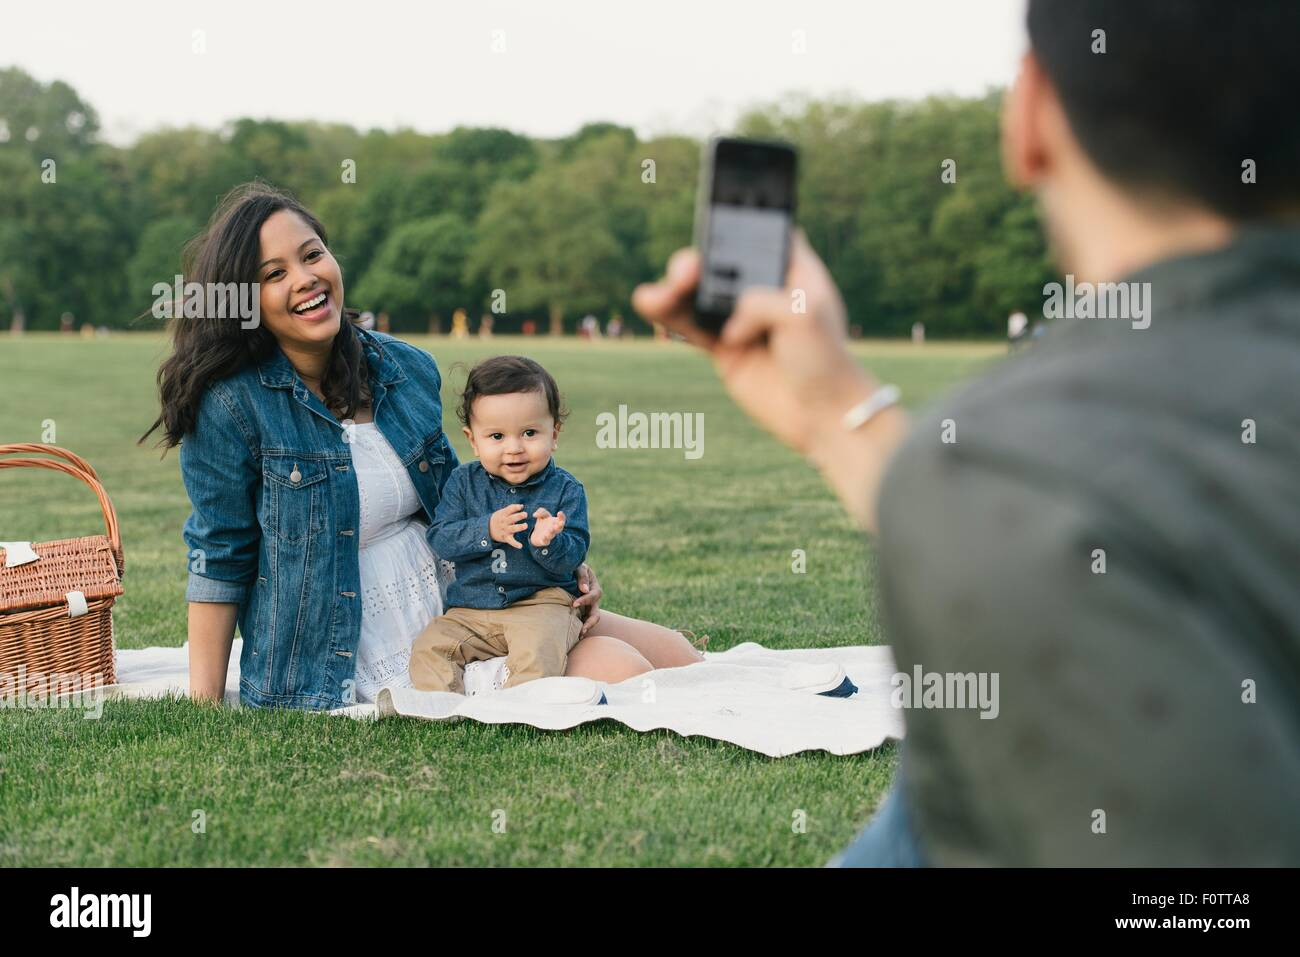 Young man using smartphone to take photograph of smiling family - Stock Image